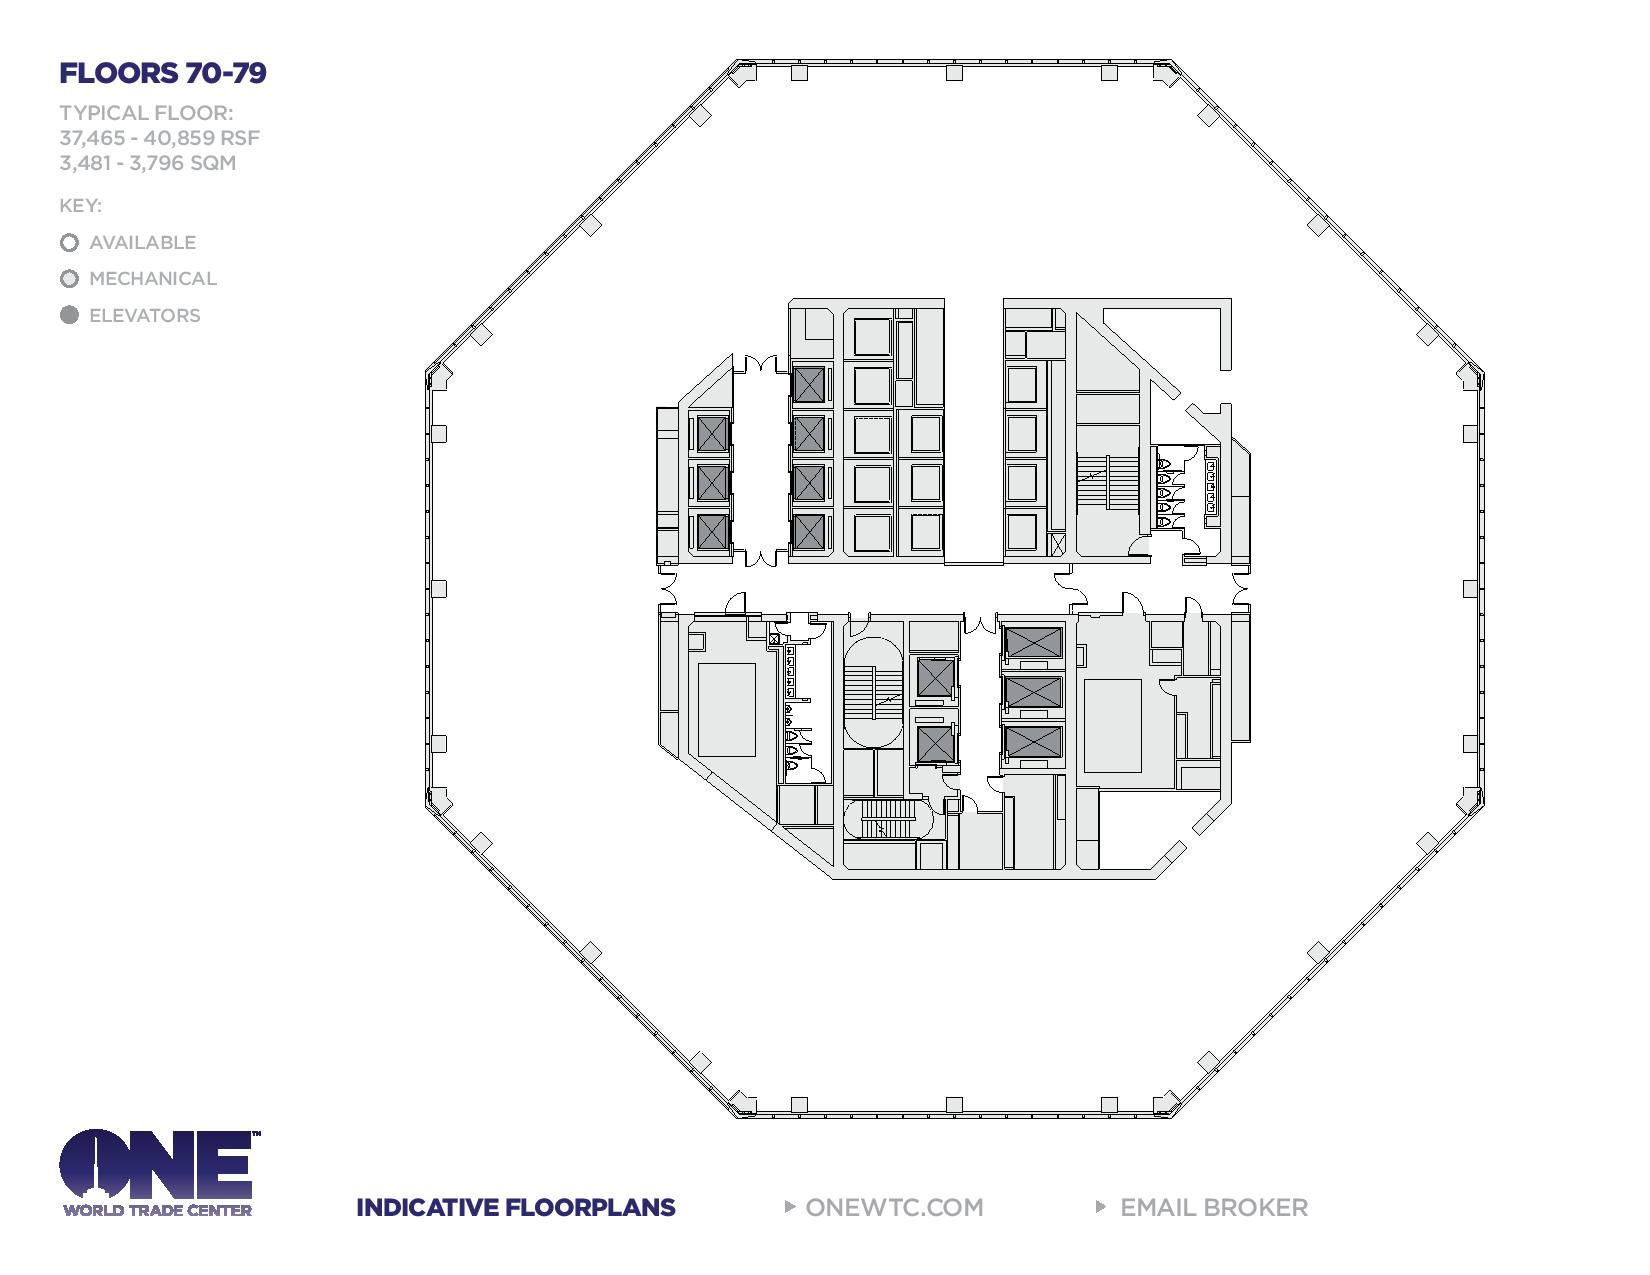 One world trade center freedom tower floor plans new for The world deck plans